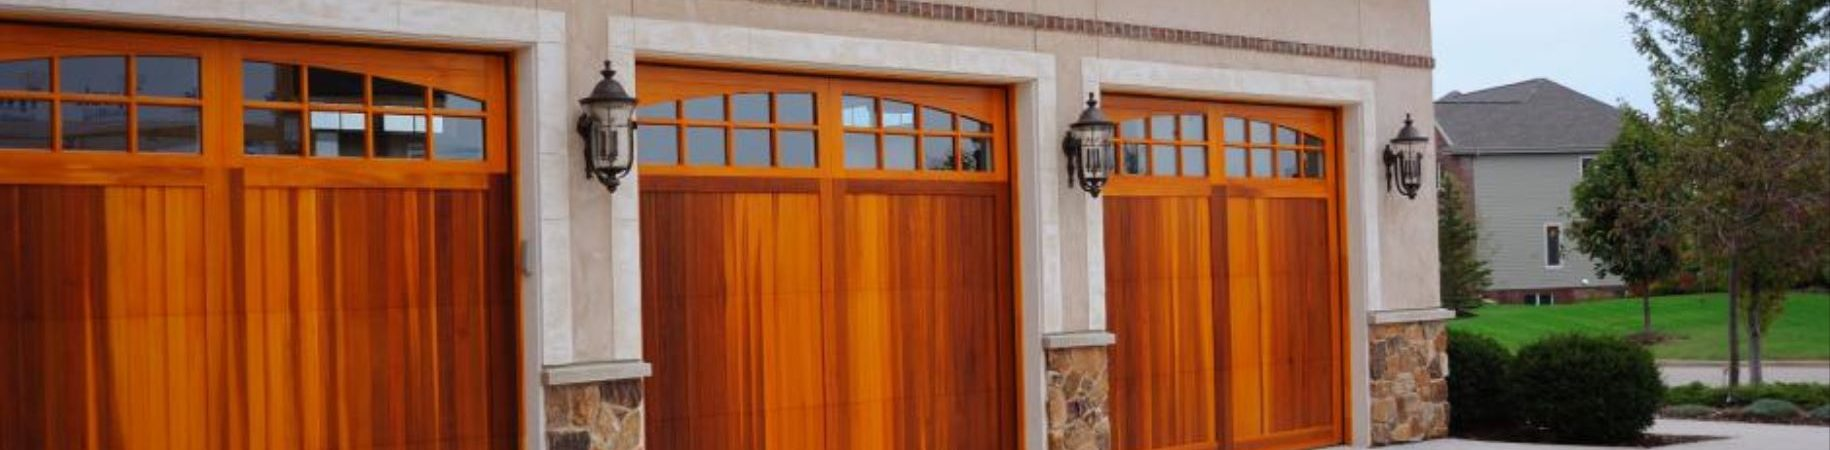 companies the invigorate pin to regard door garage stylish with amarillo